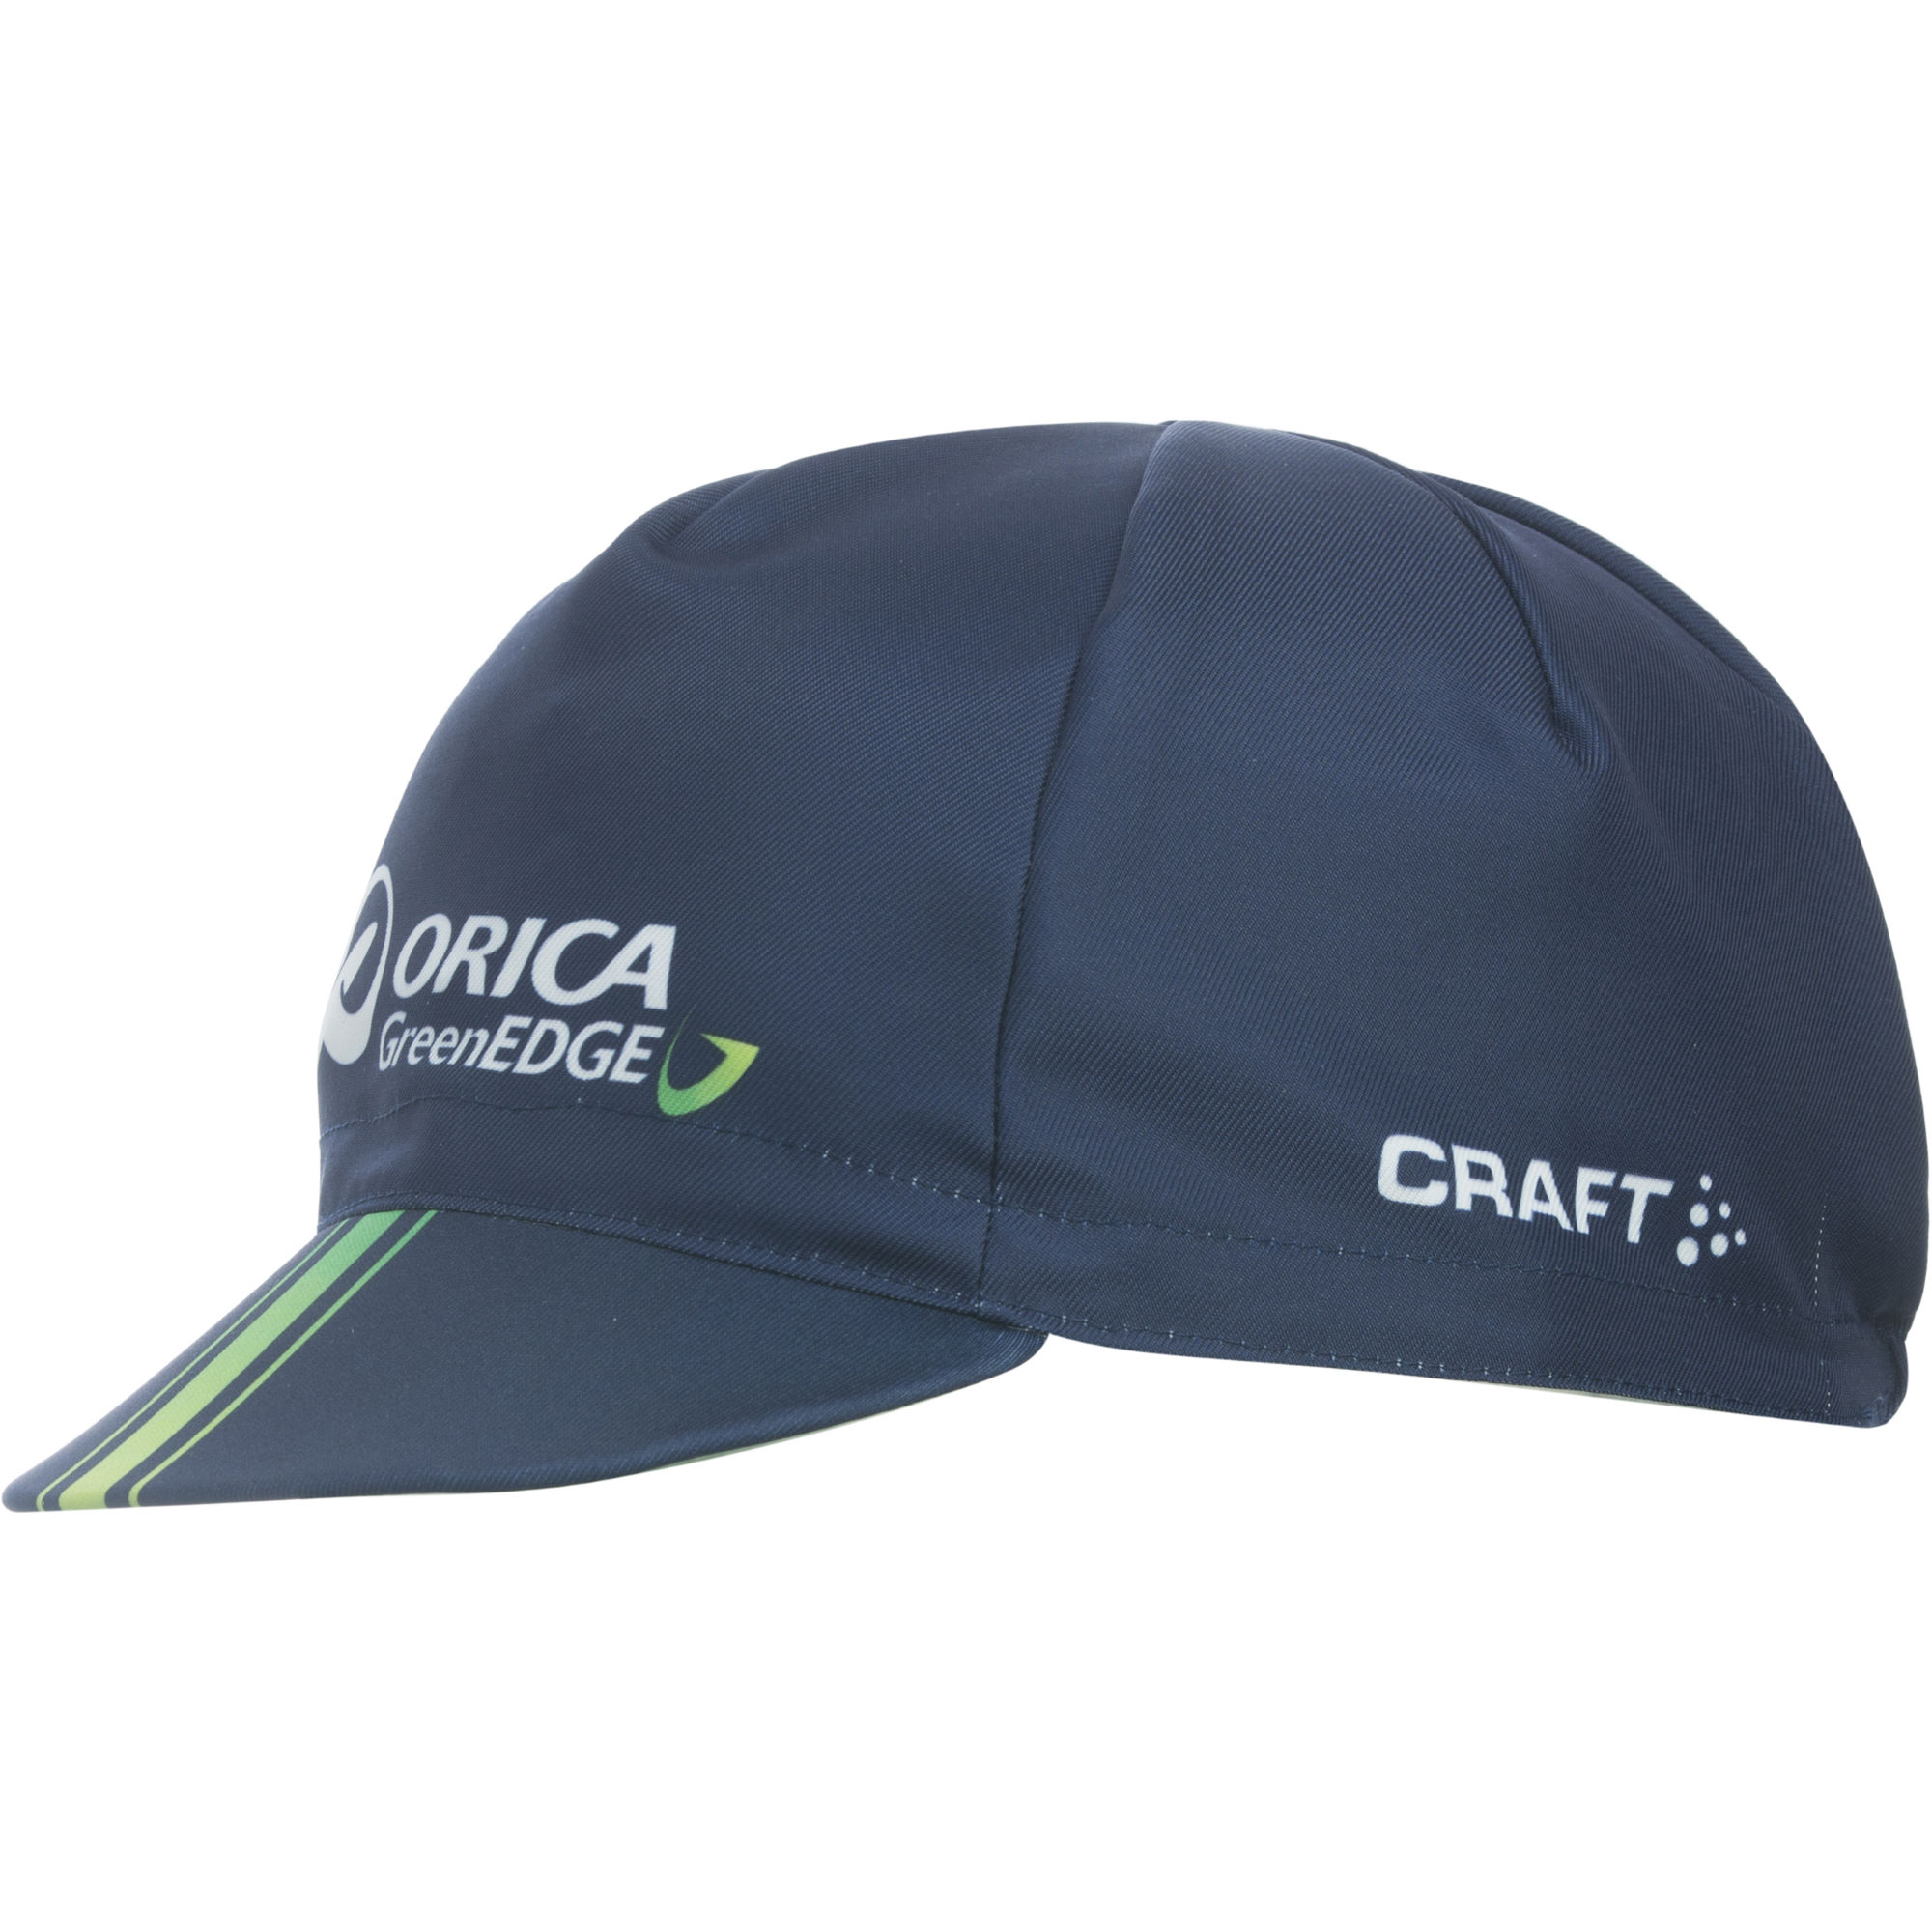 Wiggle craft orica greenedge bike cap team accessories for Cap crafter